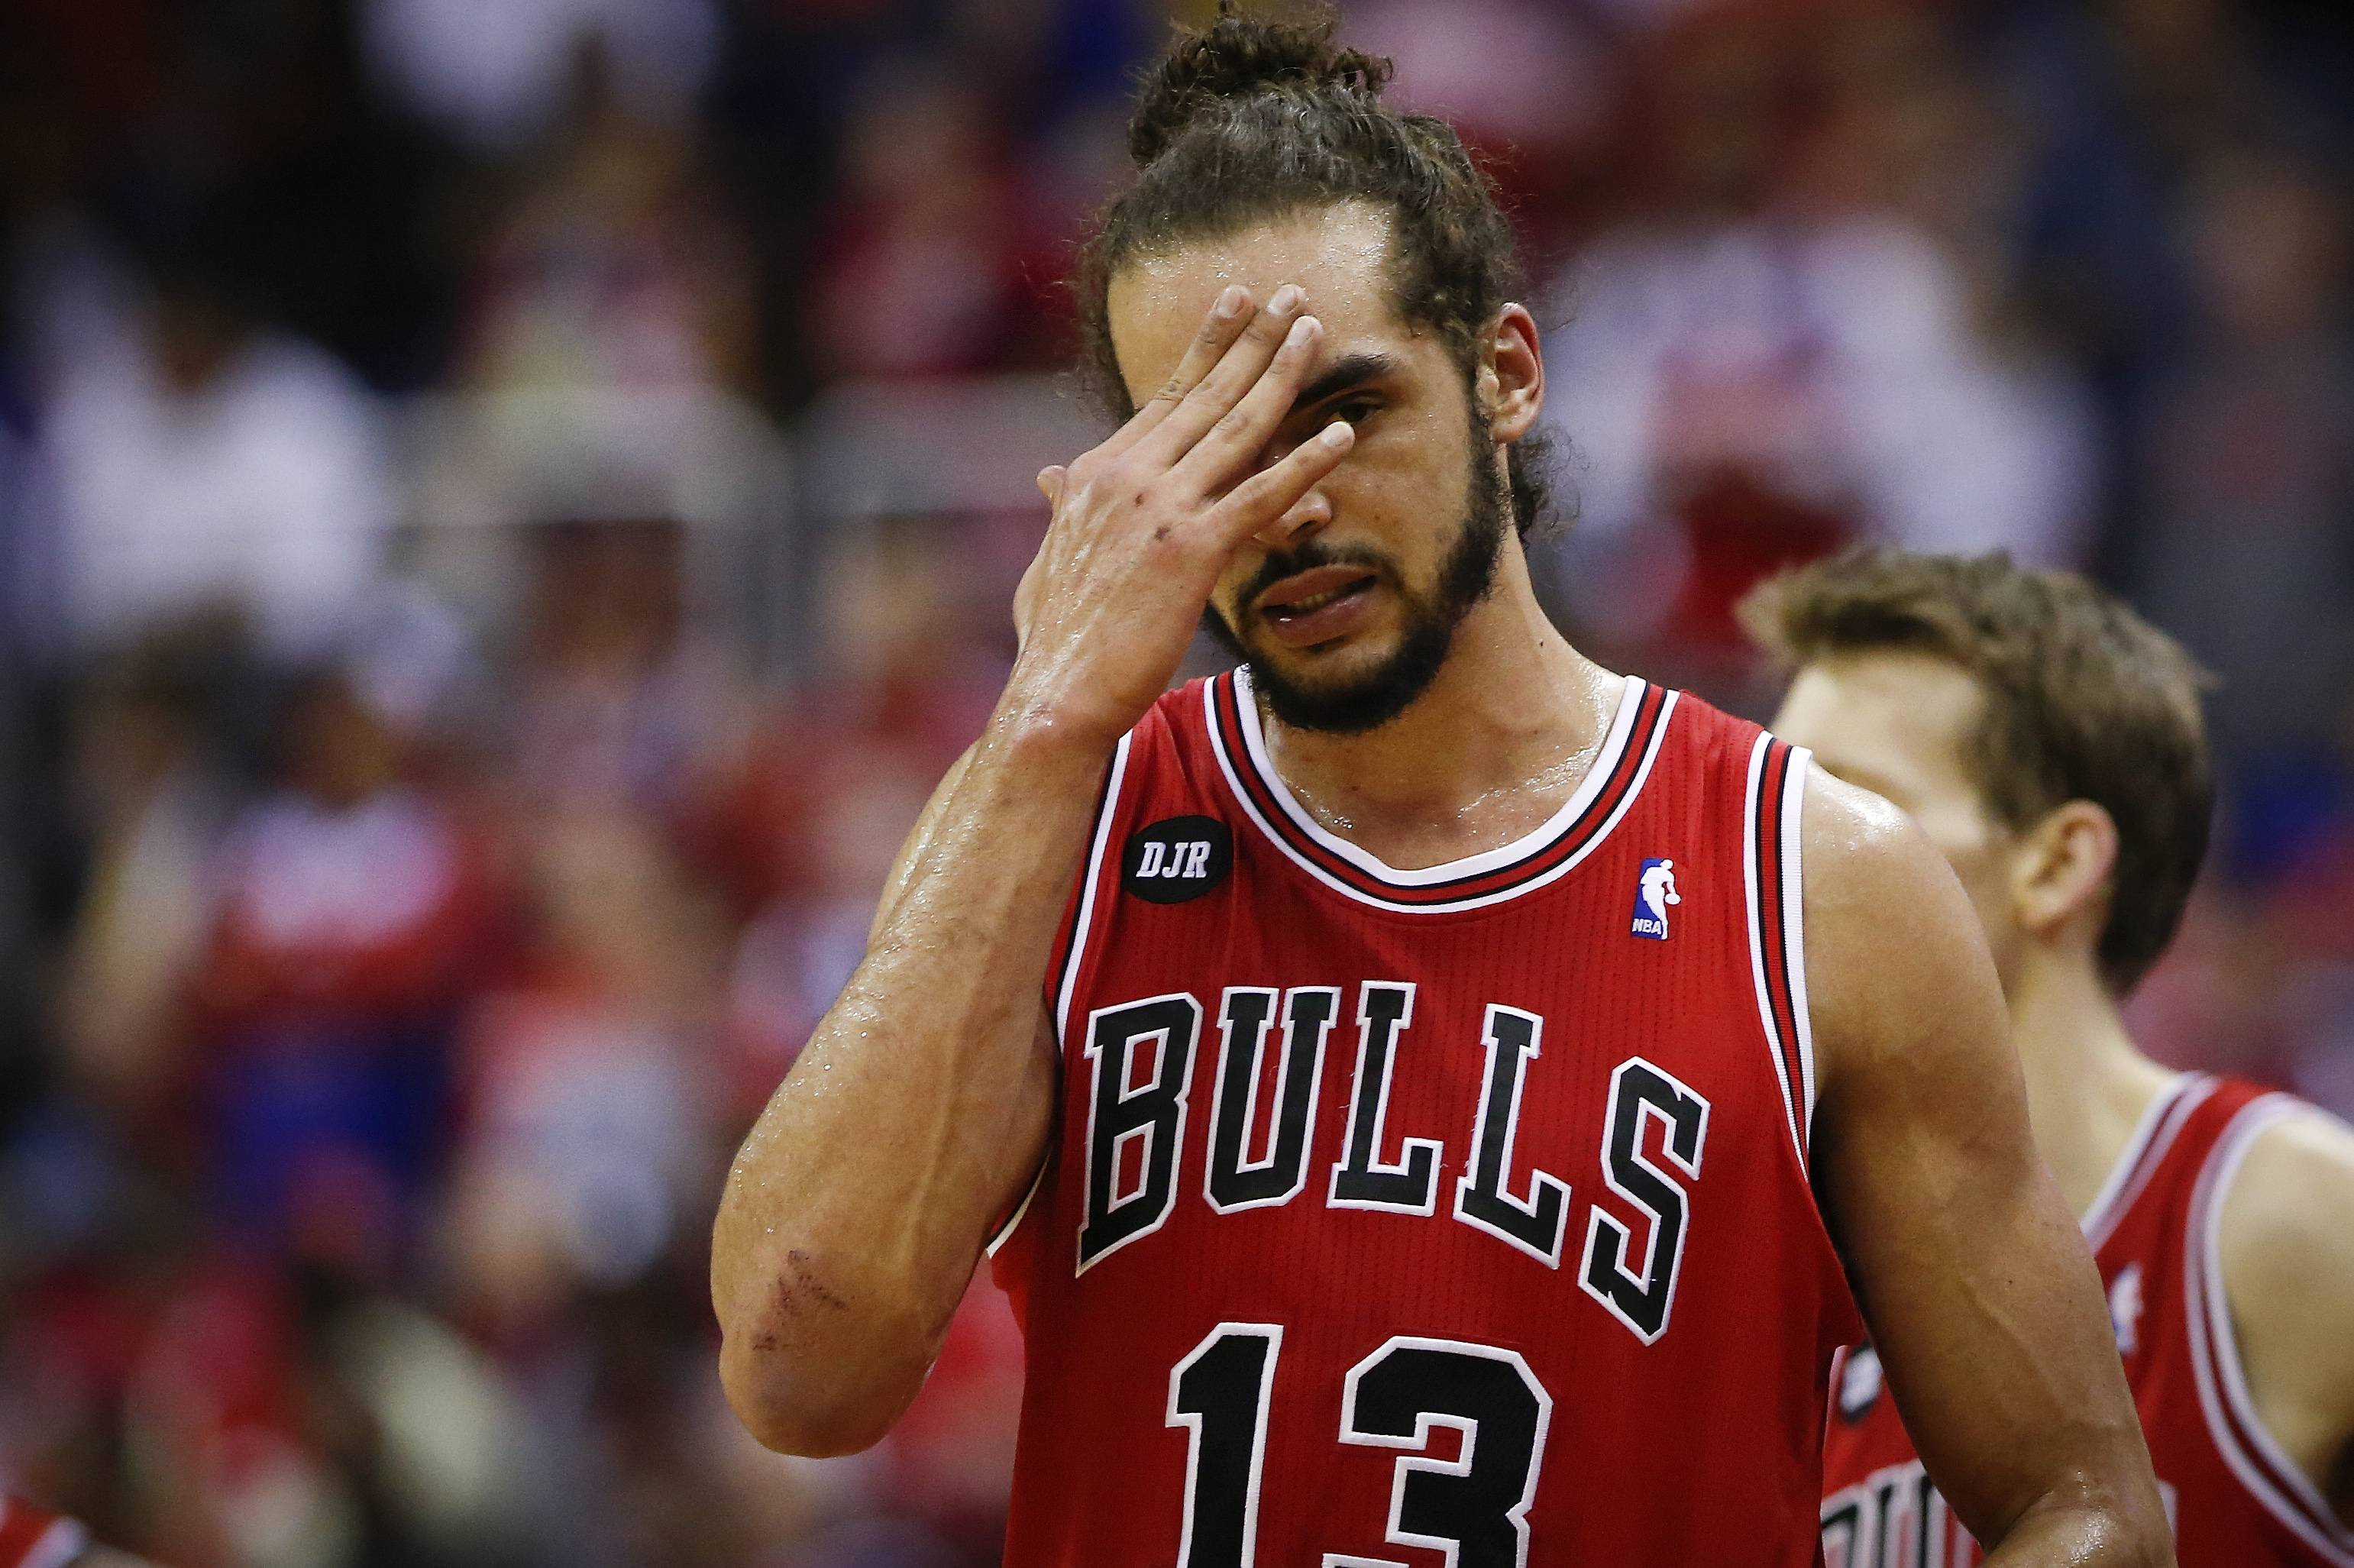 Bulls center Joakim Noah (13) holds his hand to his head during a break in the action against the Washington Wizards during the first half of Game 4 of an opening-round NBA basketball playoff series in Washington, Sunday, April 27, 2014.